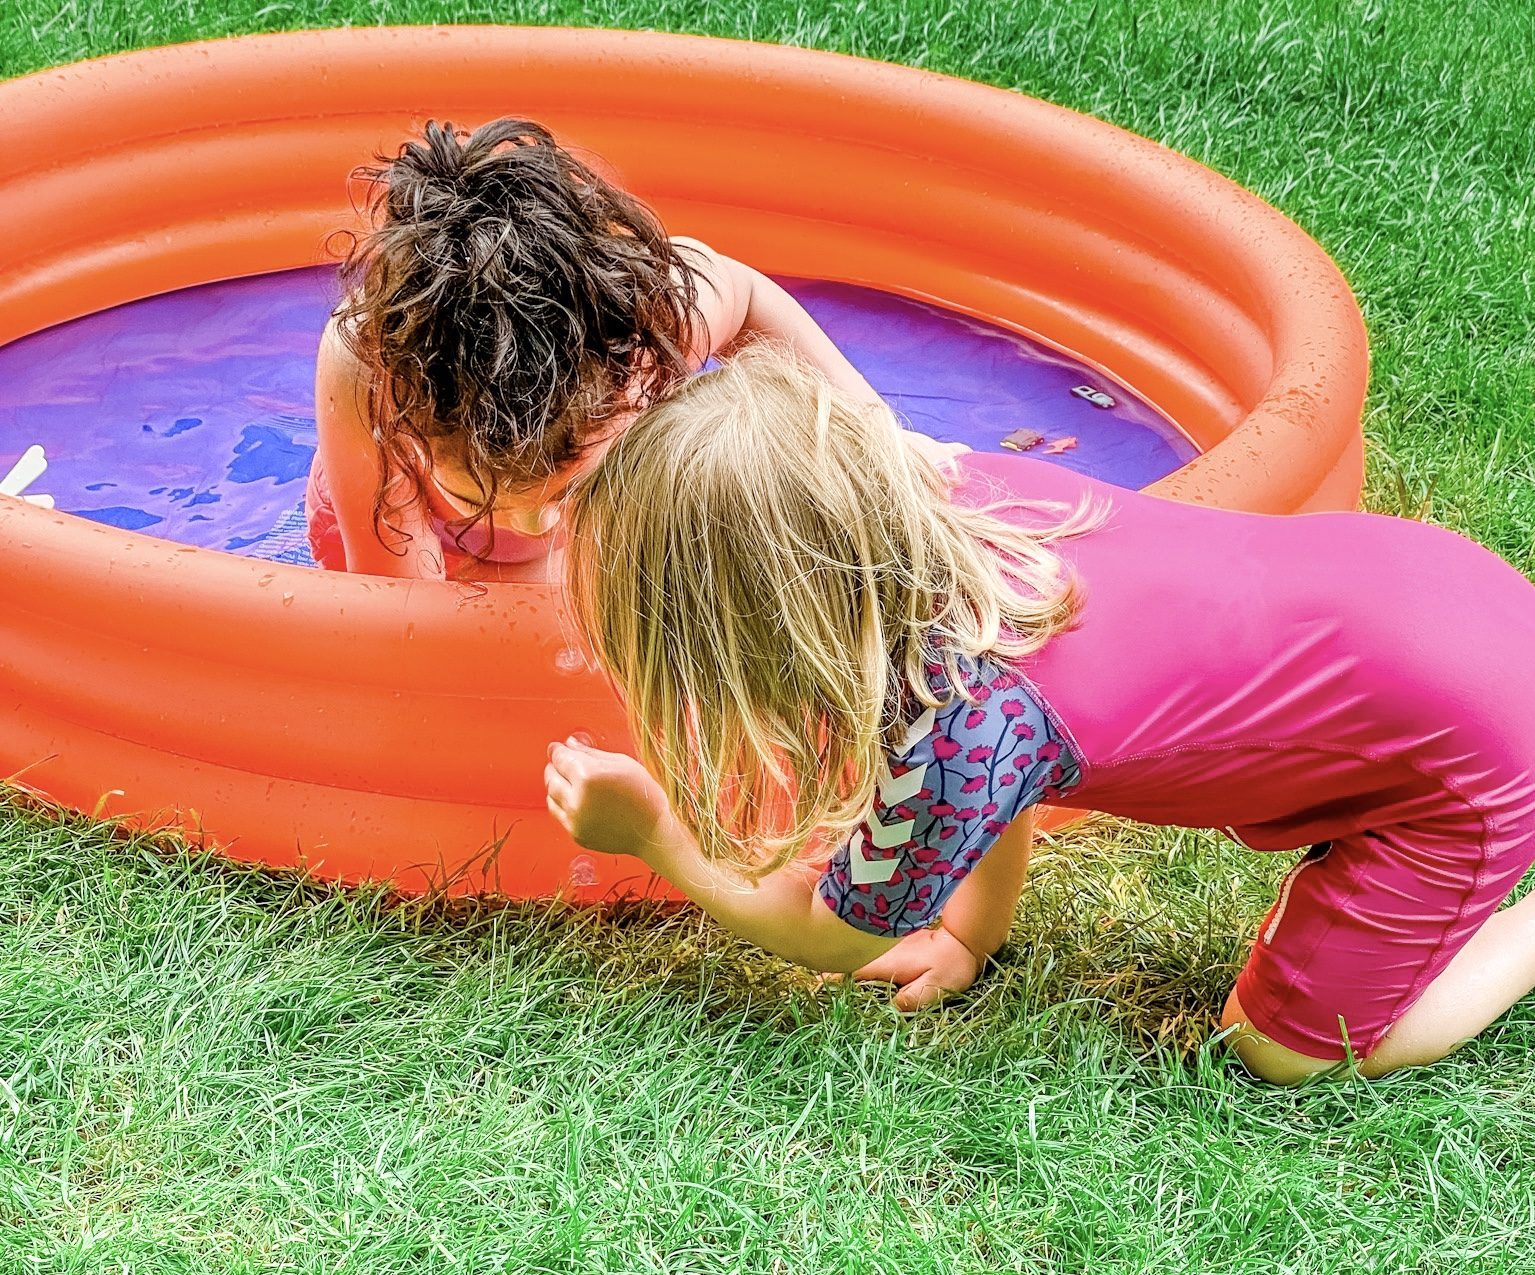 On A Normal Summer Day | A Day In The Summer Of 2020 In Germany | Kids Backyard Summer Fun